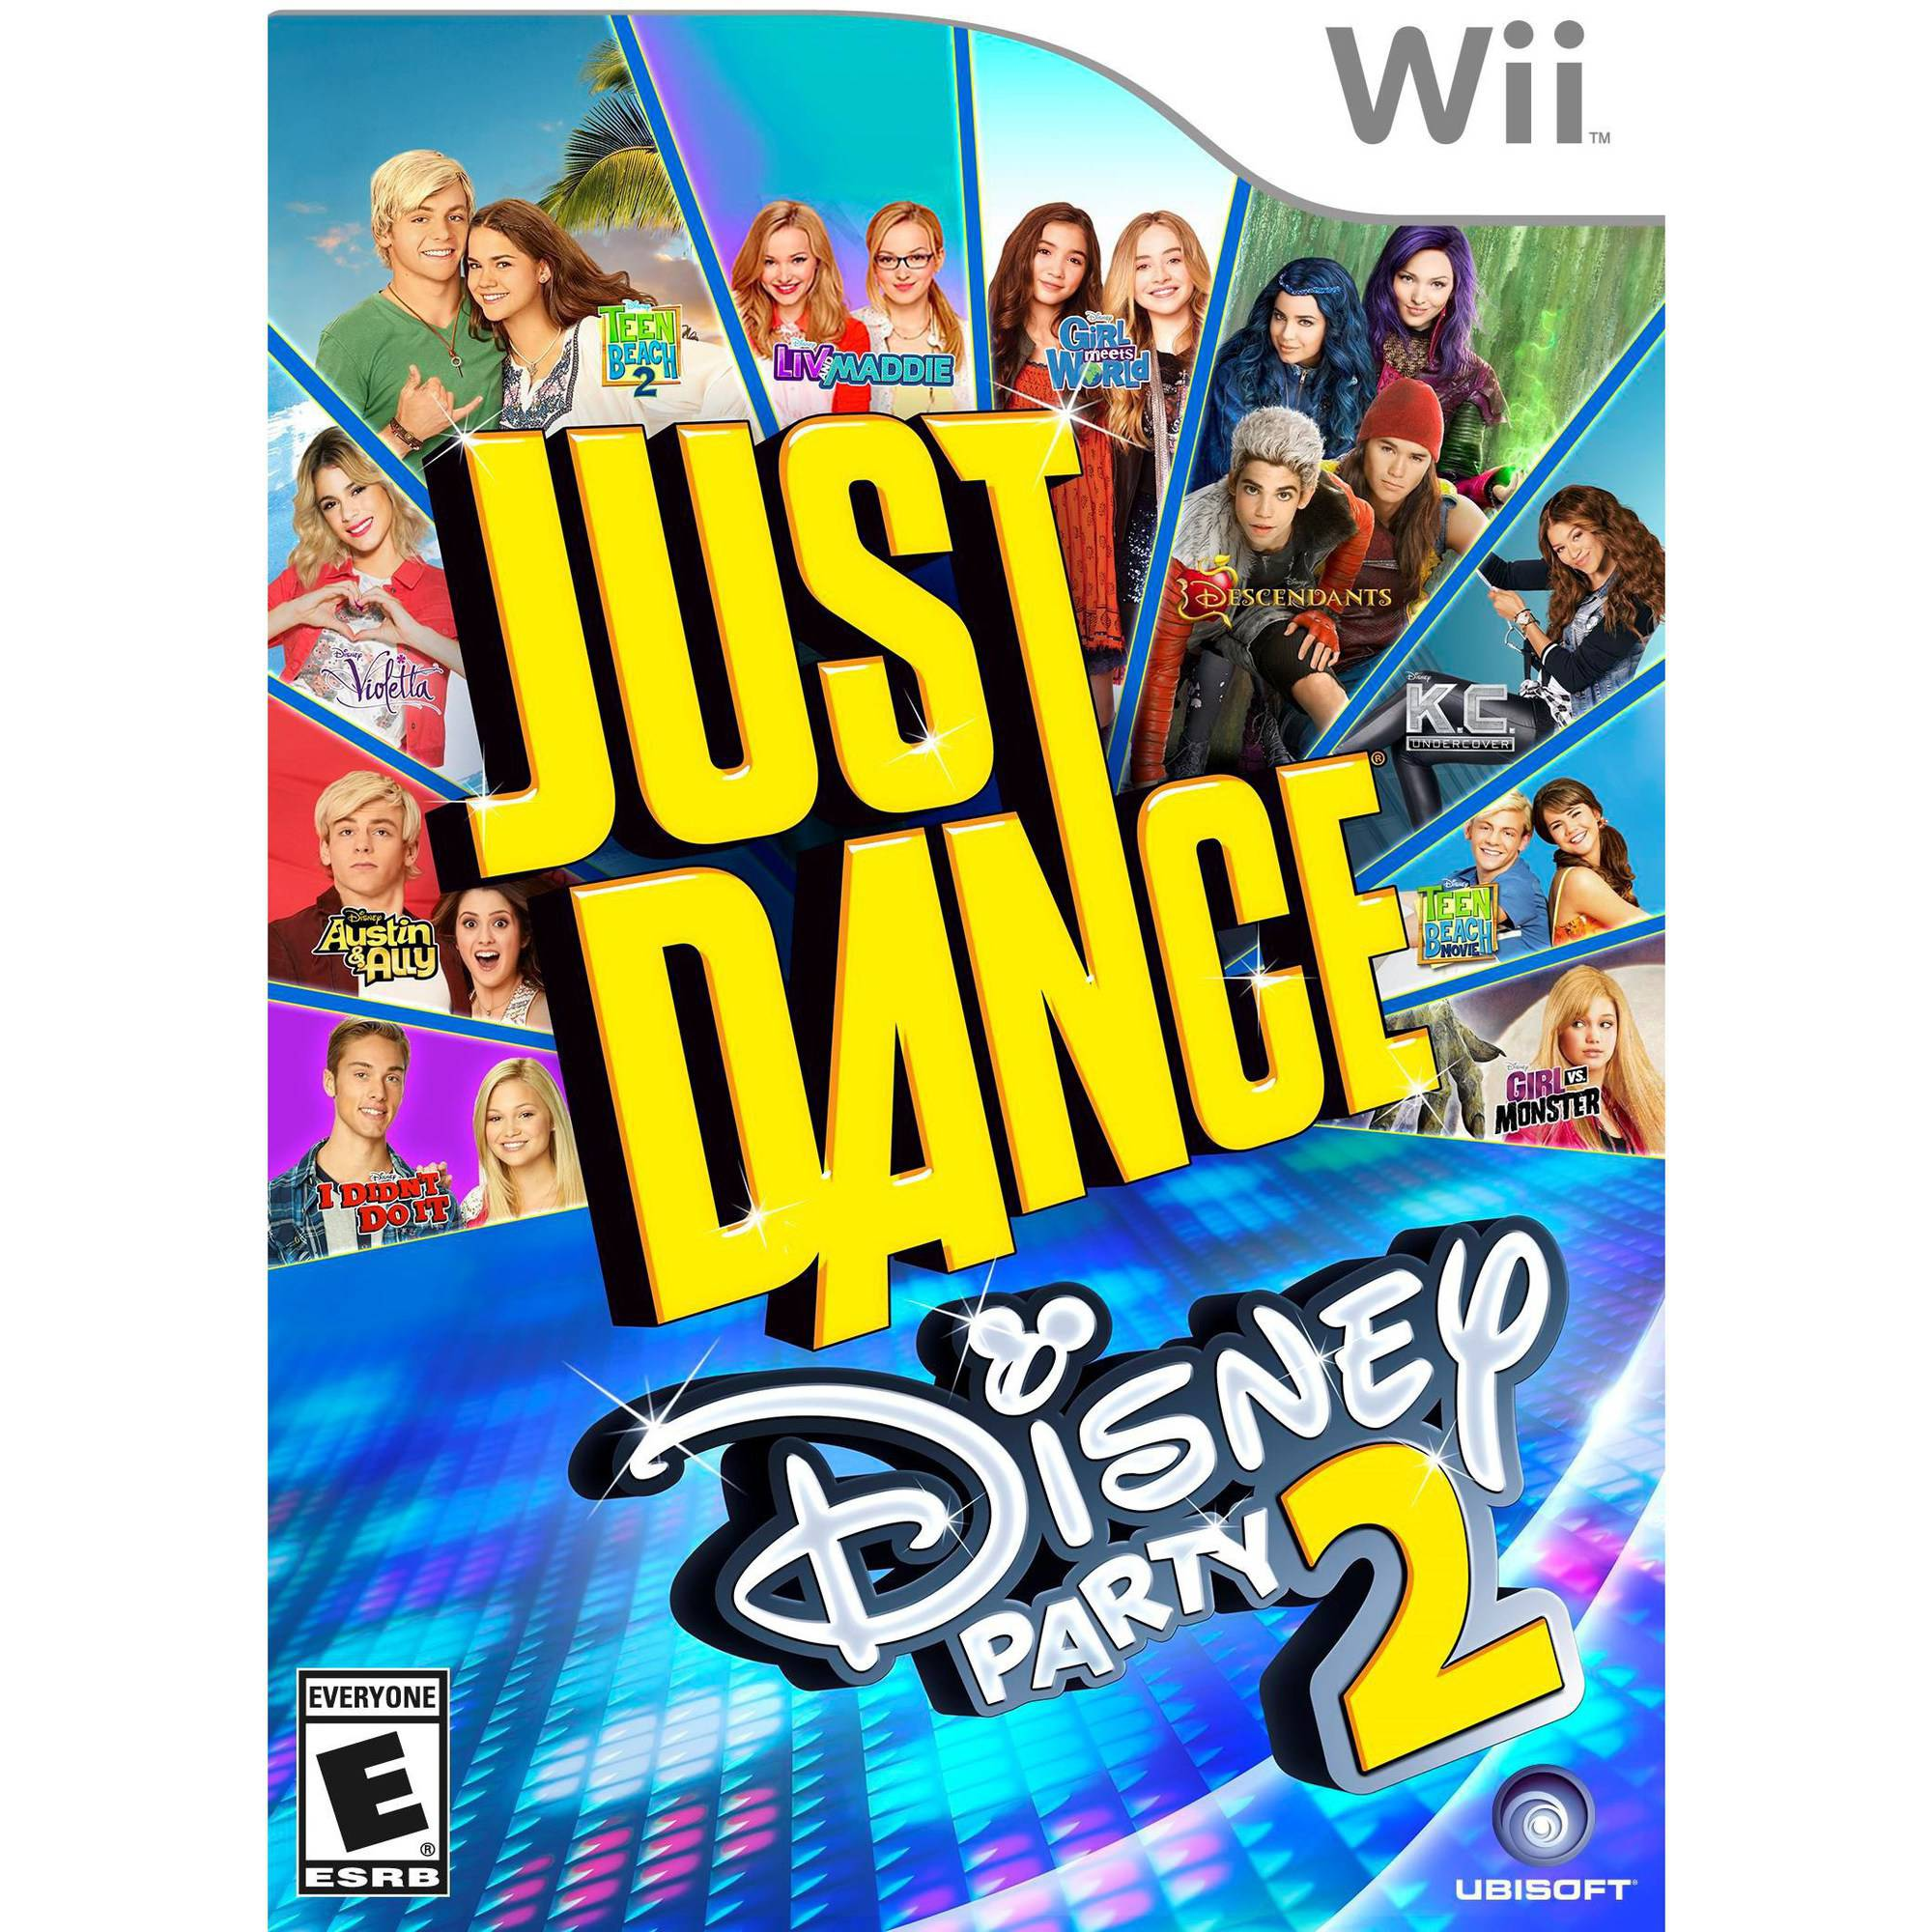 Just Dance Disney Party 2 (Wii)